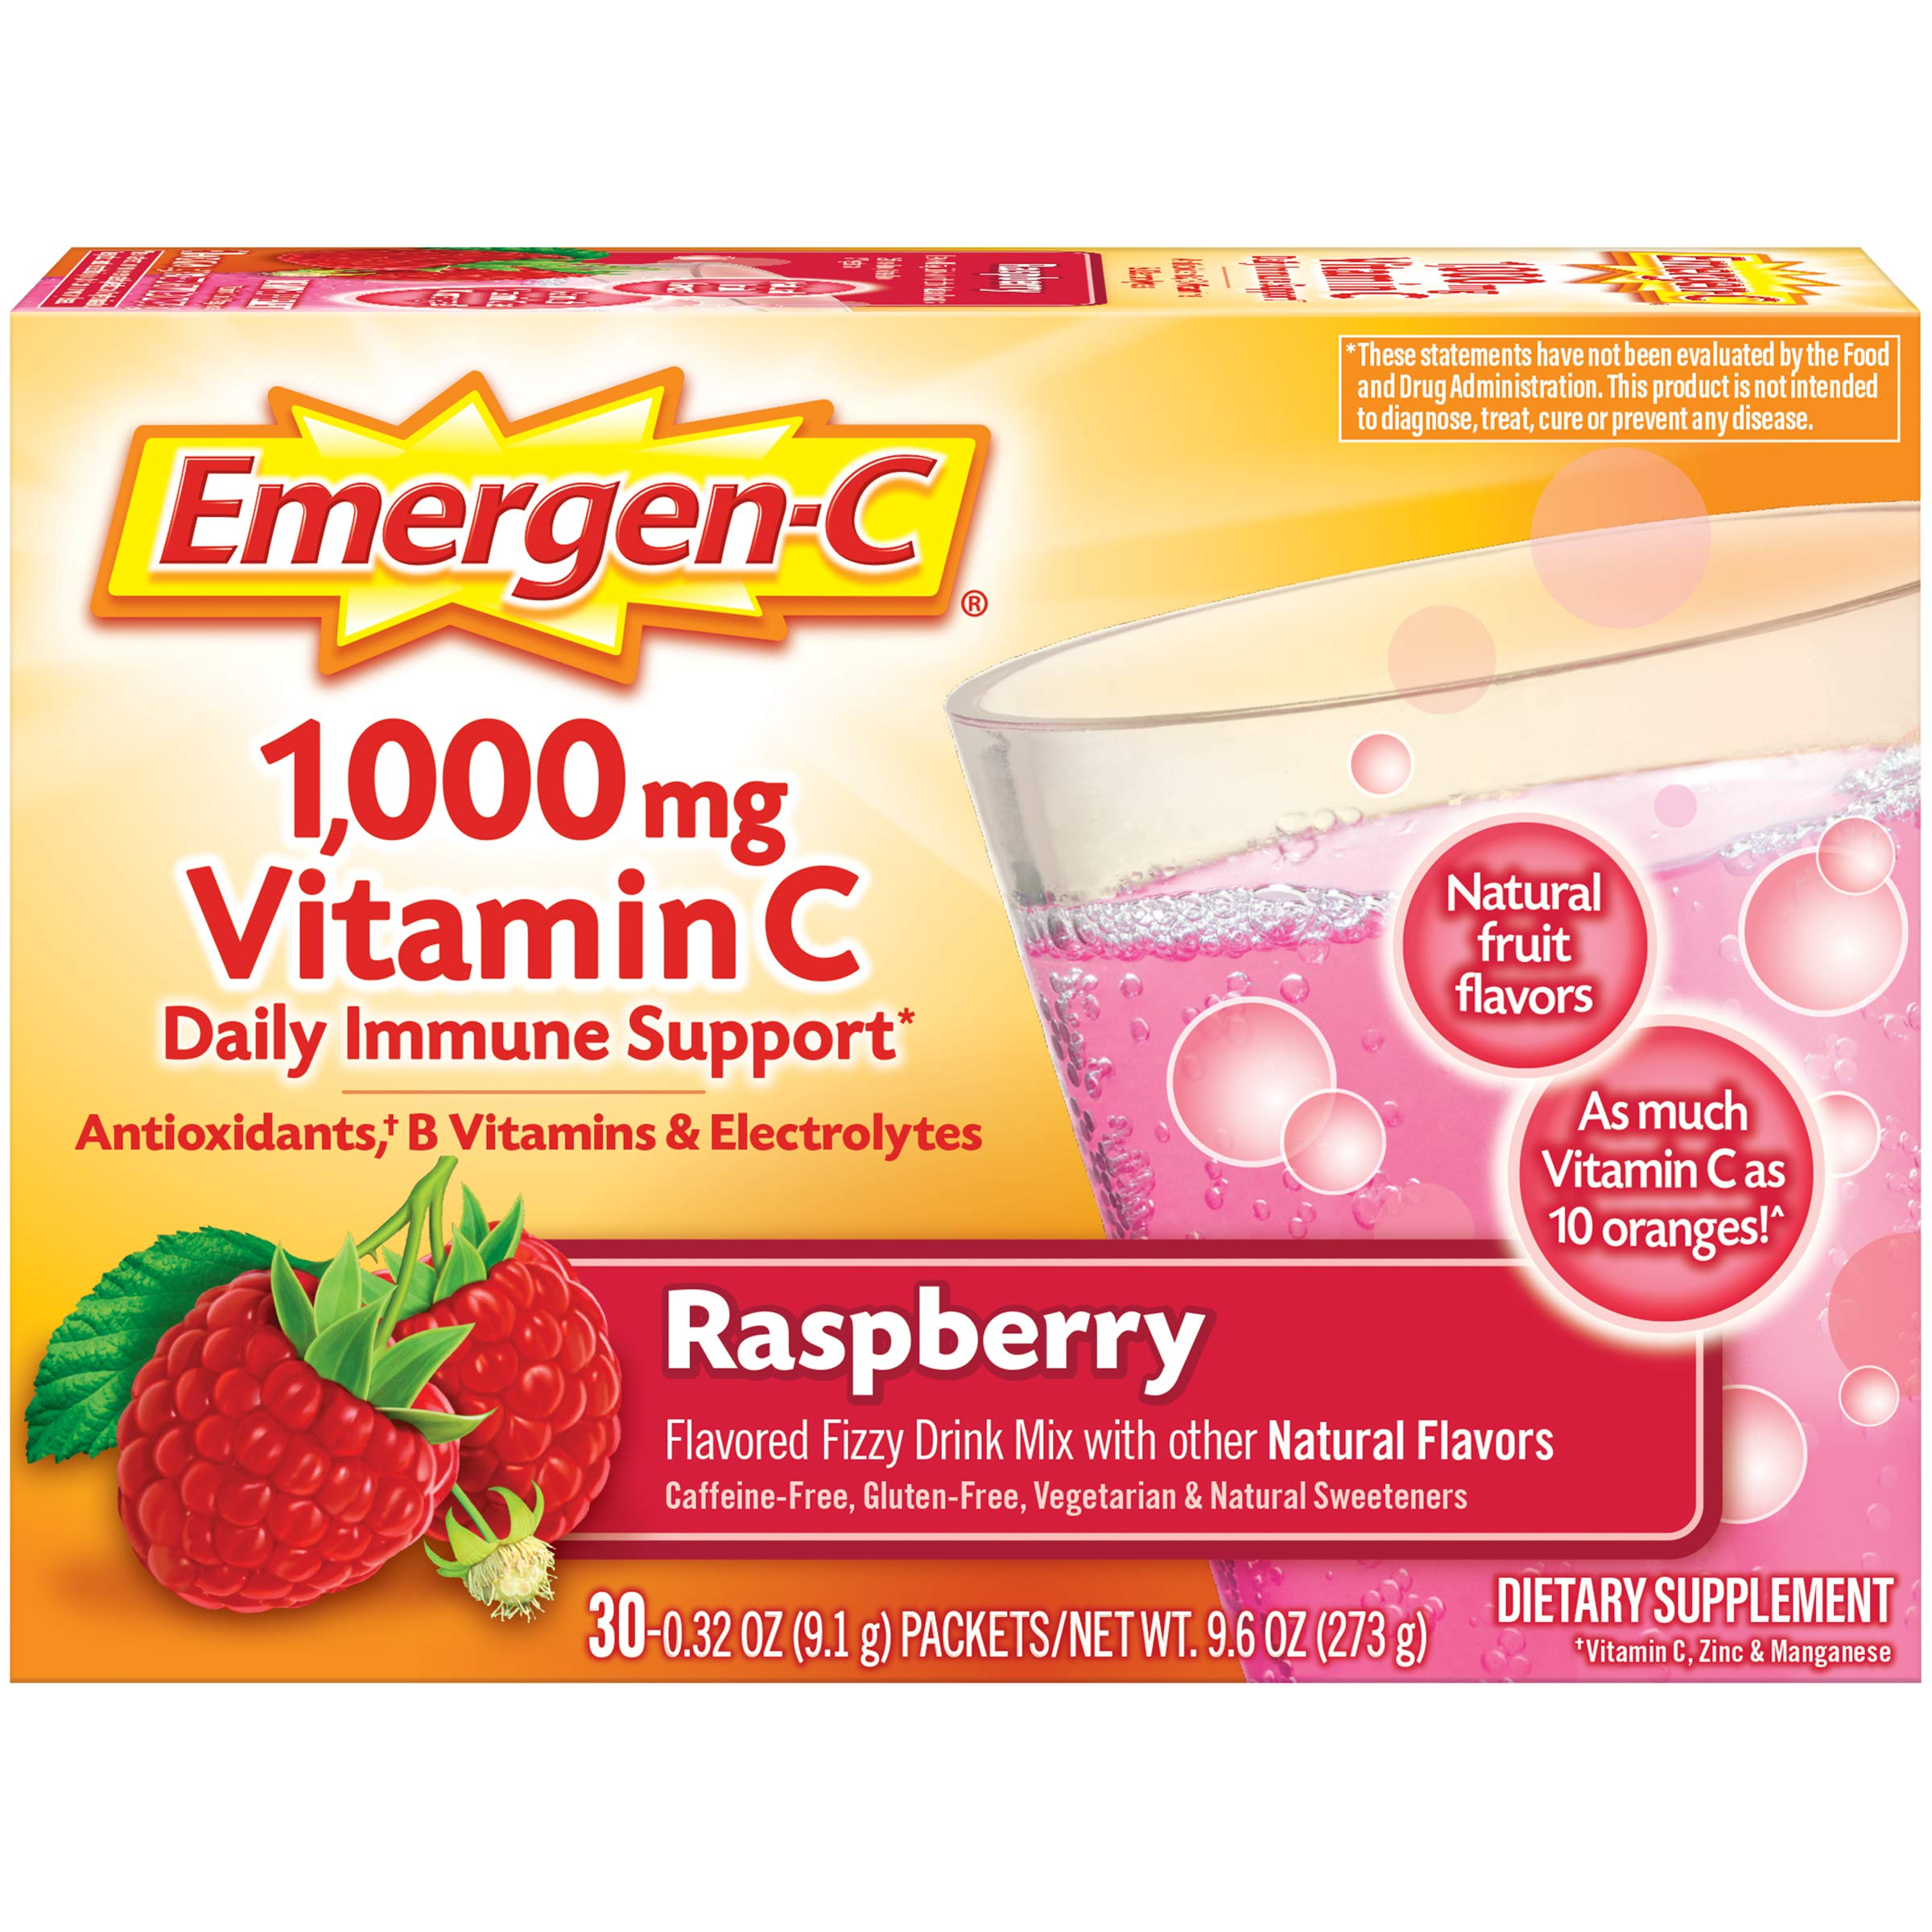 Emergen-C 1000mg Vitamin C Powder, with Antioxidants, B Vitamins and Electrolytes, Immunity Supplements for Immune Support, Caffeine Free Fizzy Drink Mix, Raspberry Flavor - 30 Count/1 Month Supply